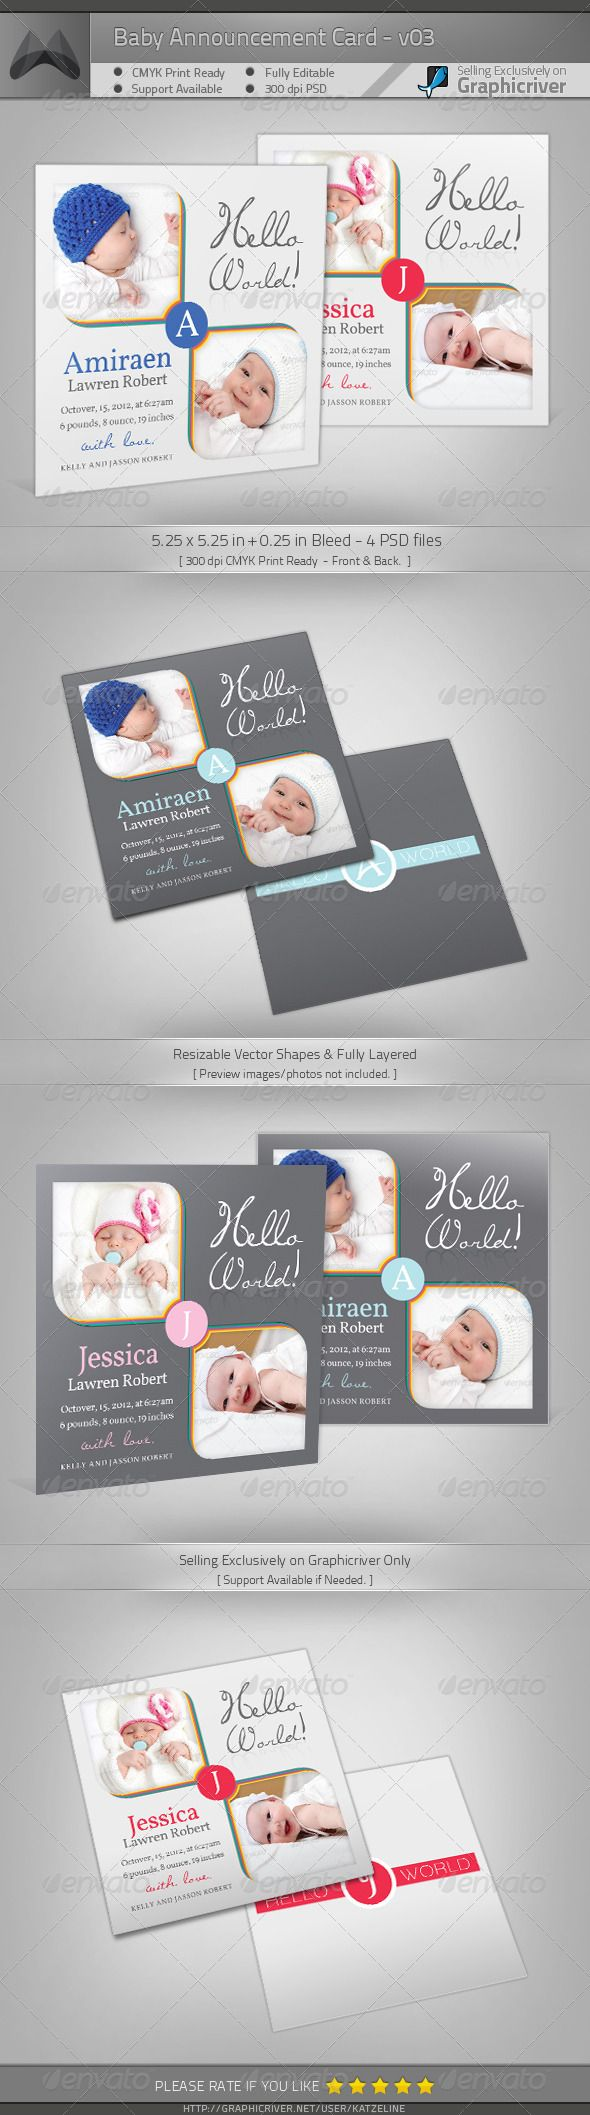 Boy Girl Baby Announcement Card 03 – Baby Announcement Cards Free